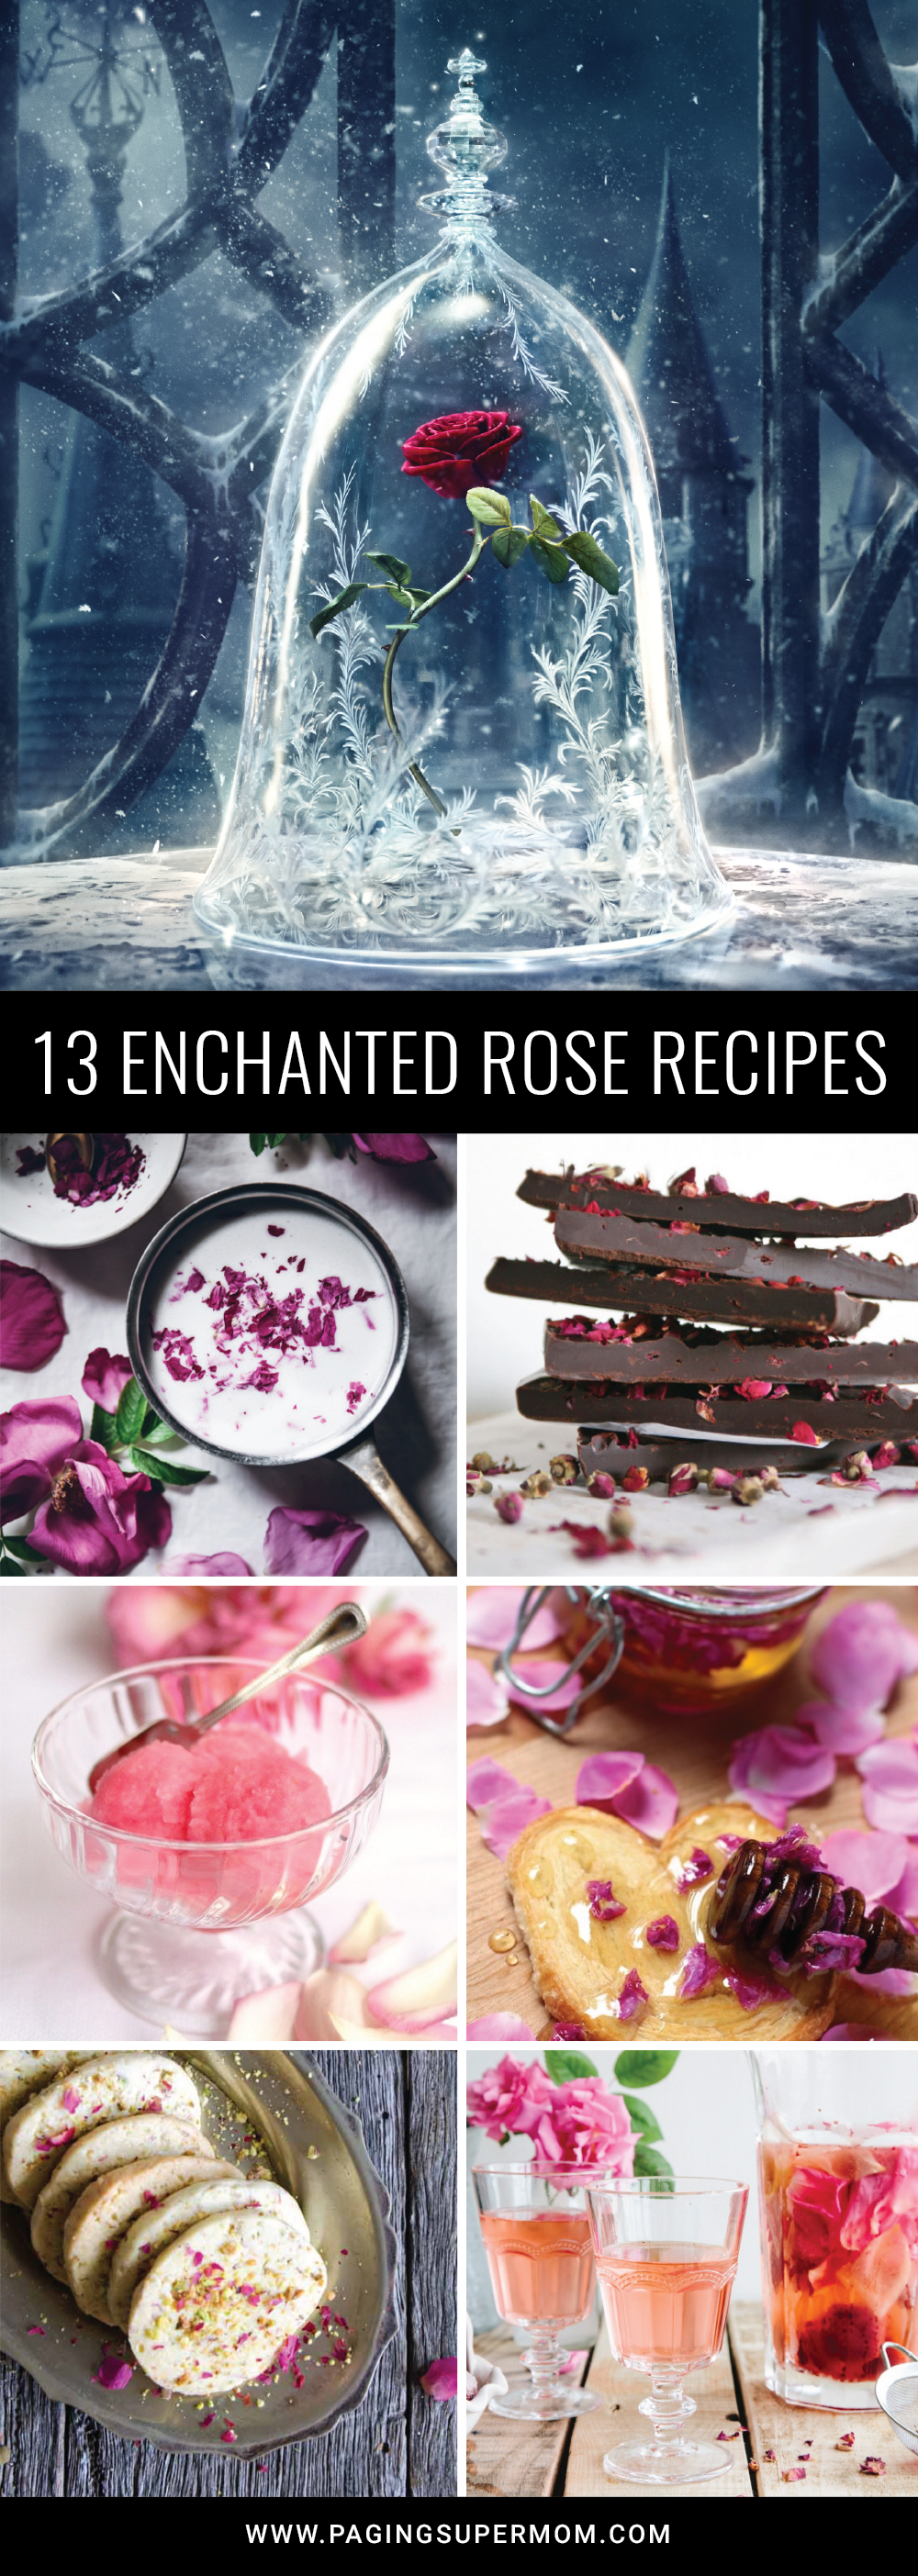 Round up of beautiful Rose Recipes inspired by Beauty & the Beast via @PagingSupermom